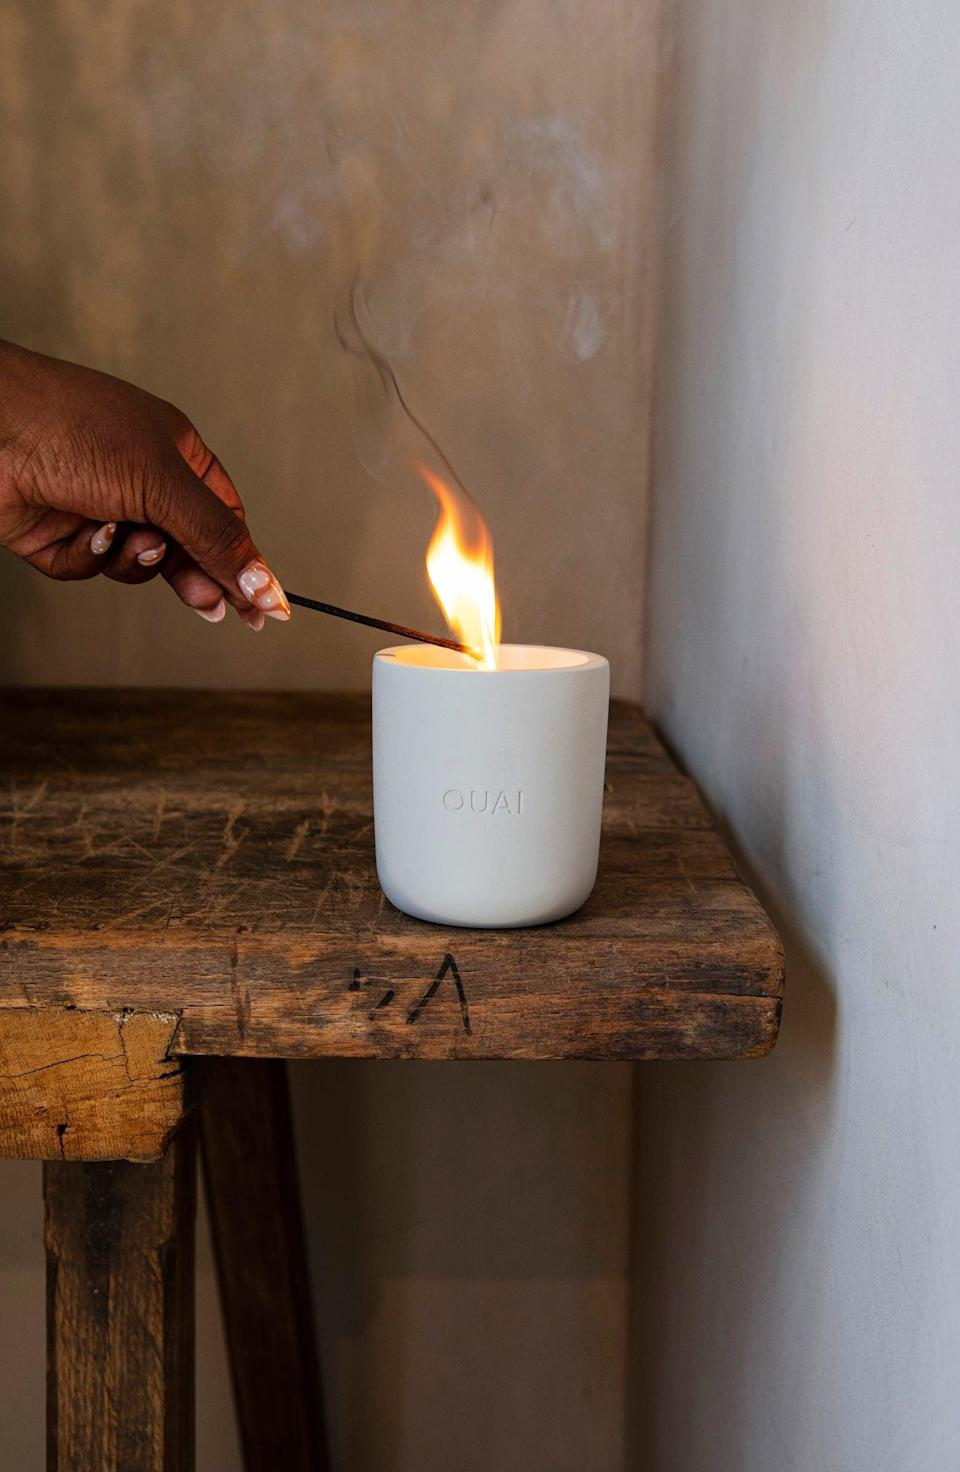 """<p>""""I'm a longtime fan of Ouai's scents, but the brand's new <span> North Bondi Candle</span> ($44) is on a whole other level. The scent may have floral notes, but its rich, musky smell makes it perfect for a cool fall day. And it doesn't hurt that it looks incredibly chic sitting on my coffee table."""" - Yerin Kim, associate editor, Trending and Viral Features</p>"""